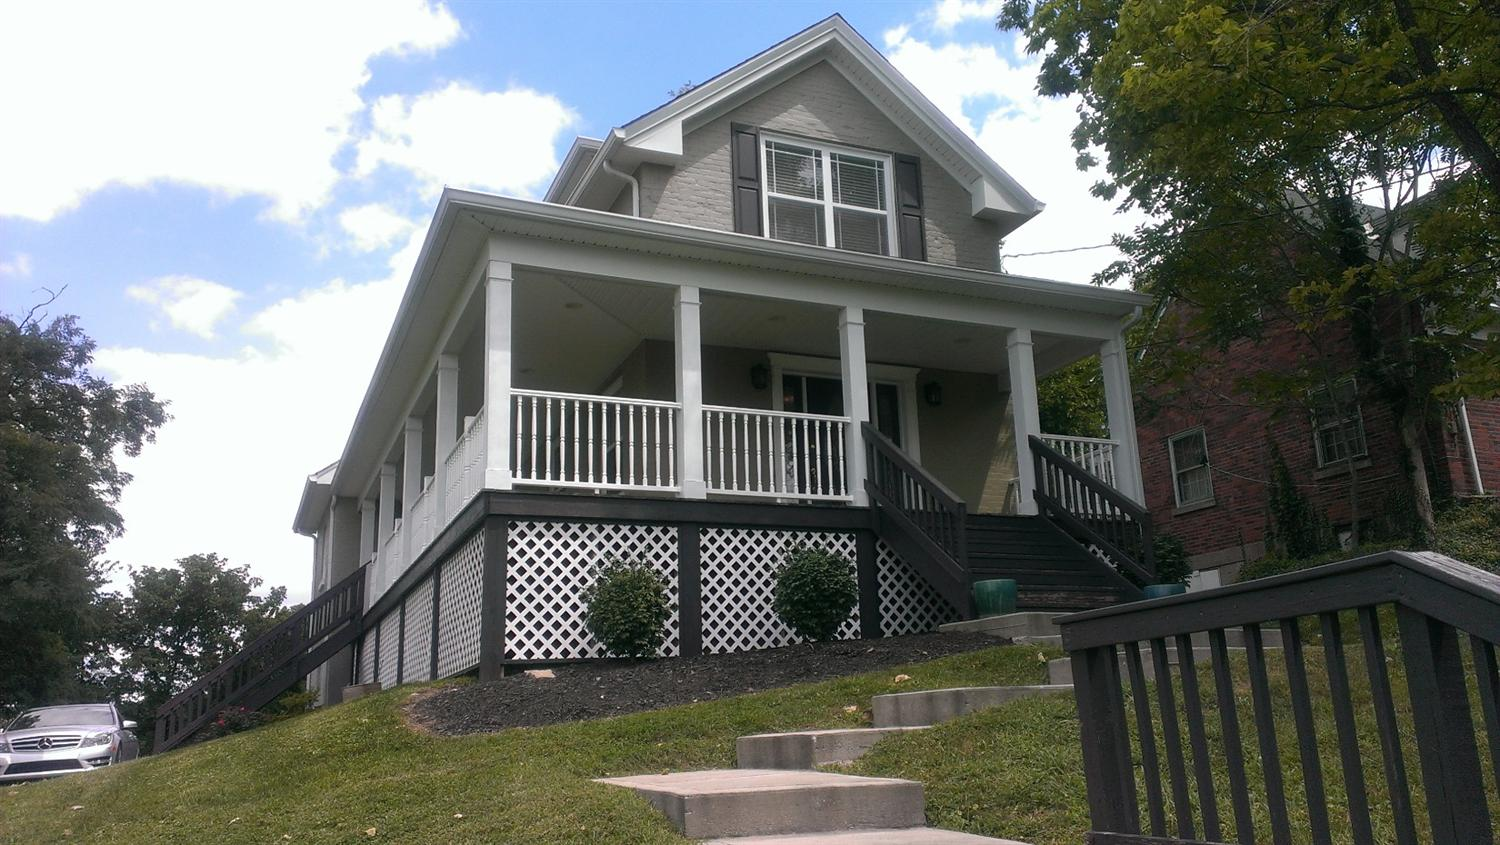 Photo 1 for 203 Grandview Ave Newport, KY 41071